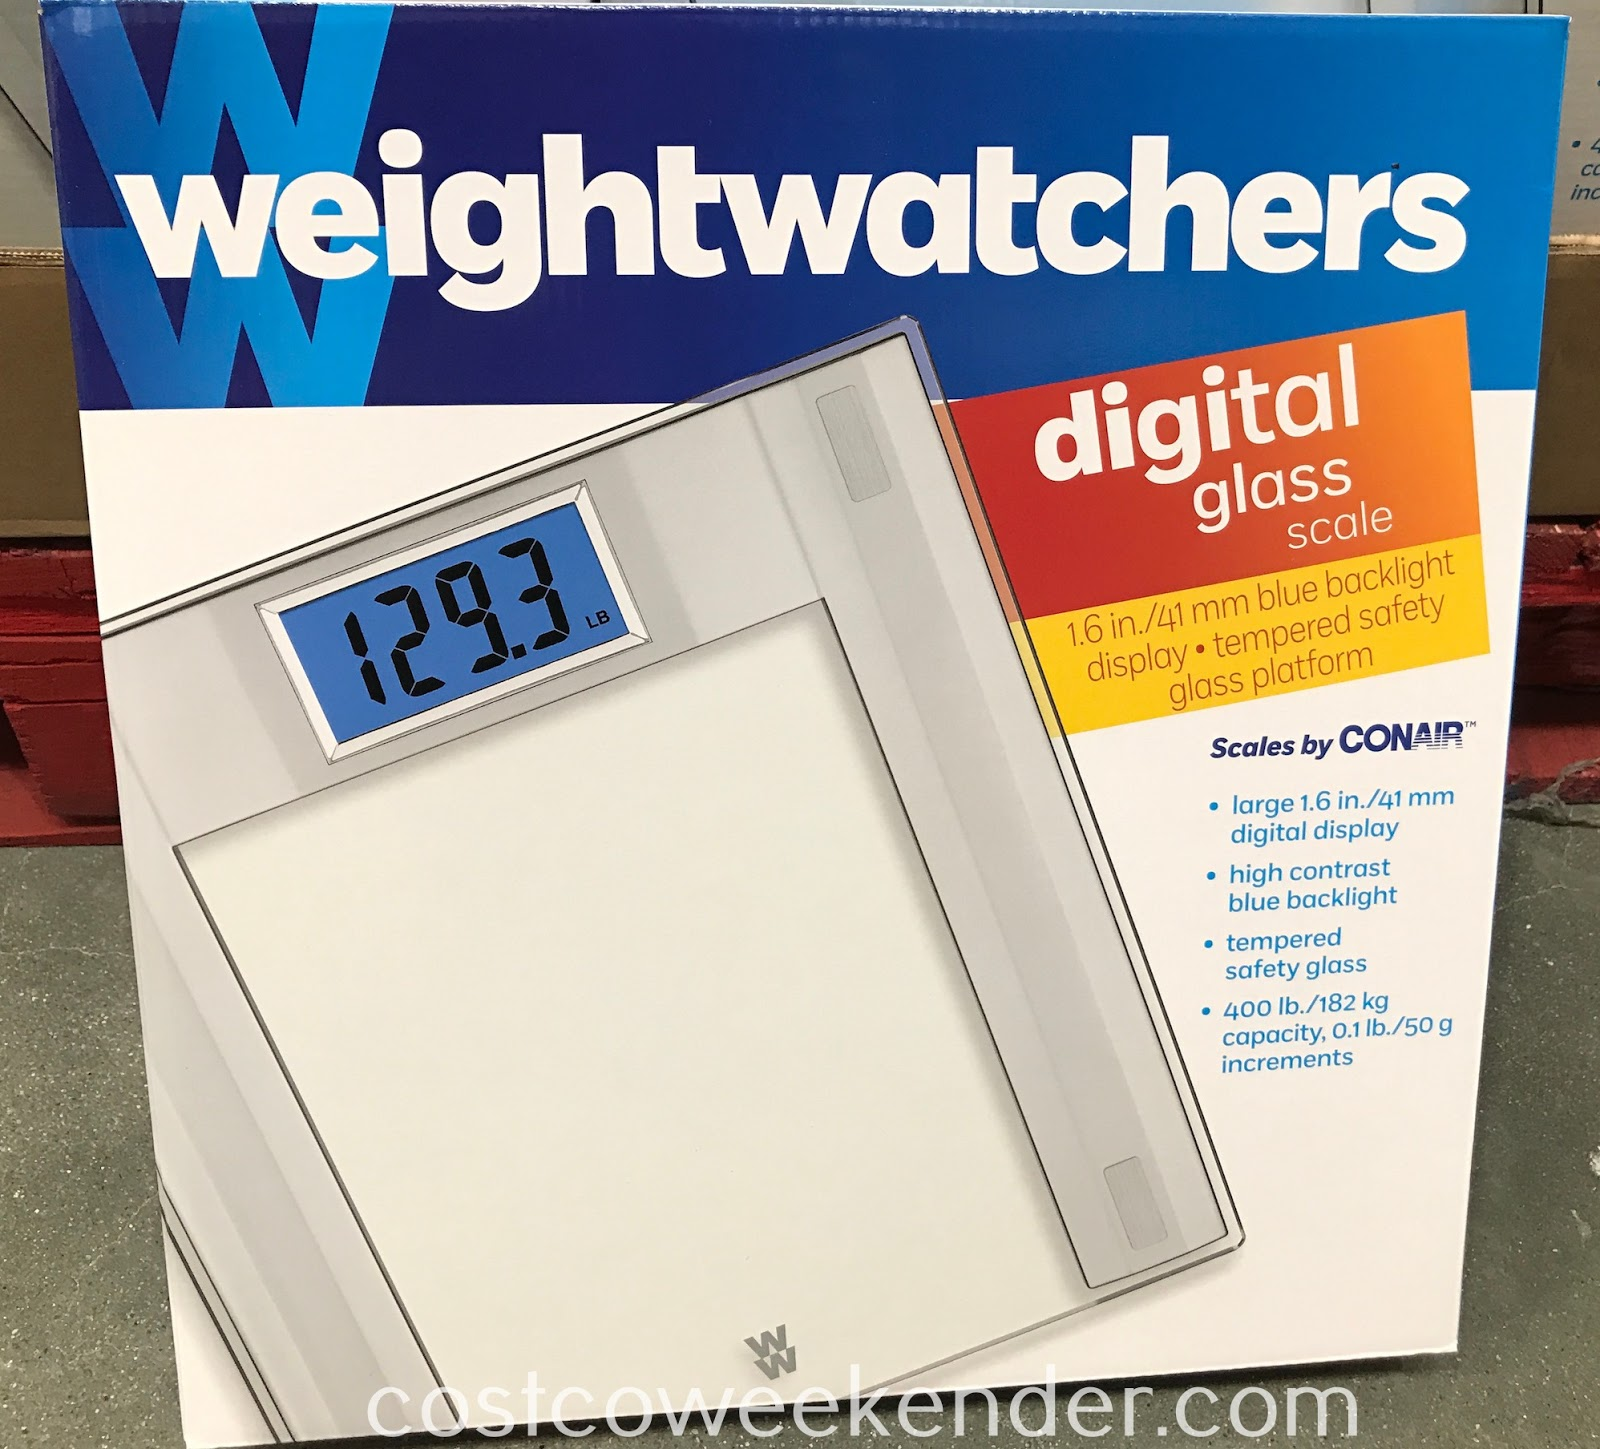 Costco 1170723 - See if your dieting is working with the Weight Watchers Digital Glass Scale